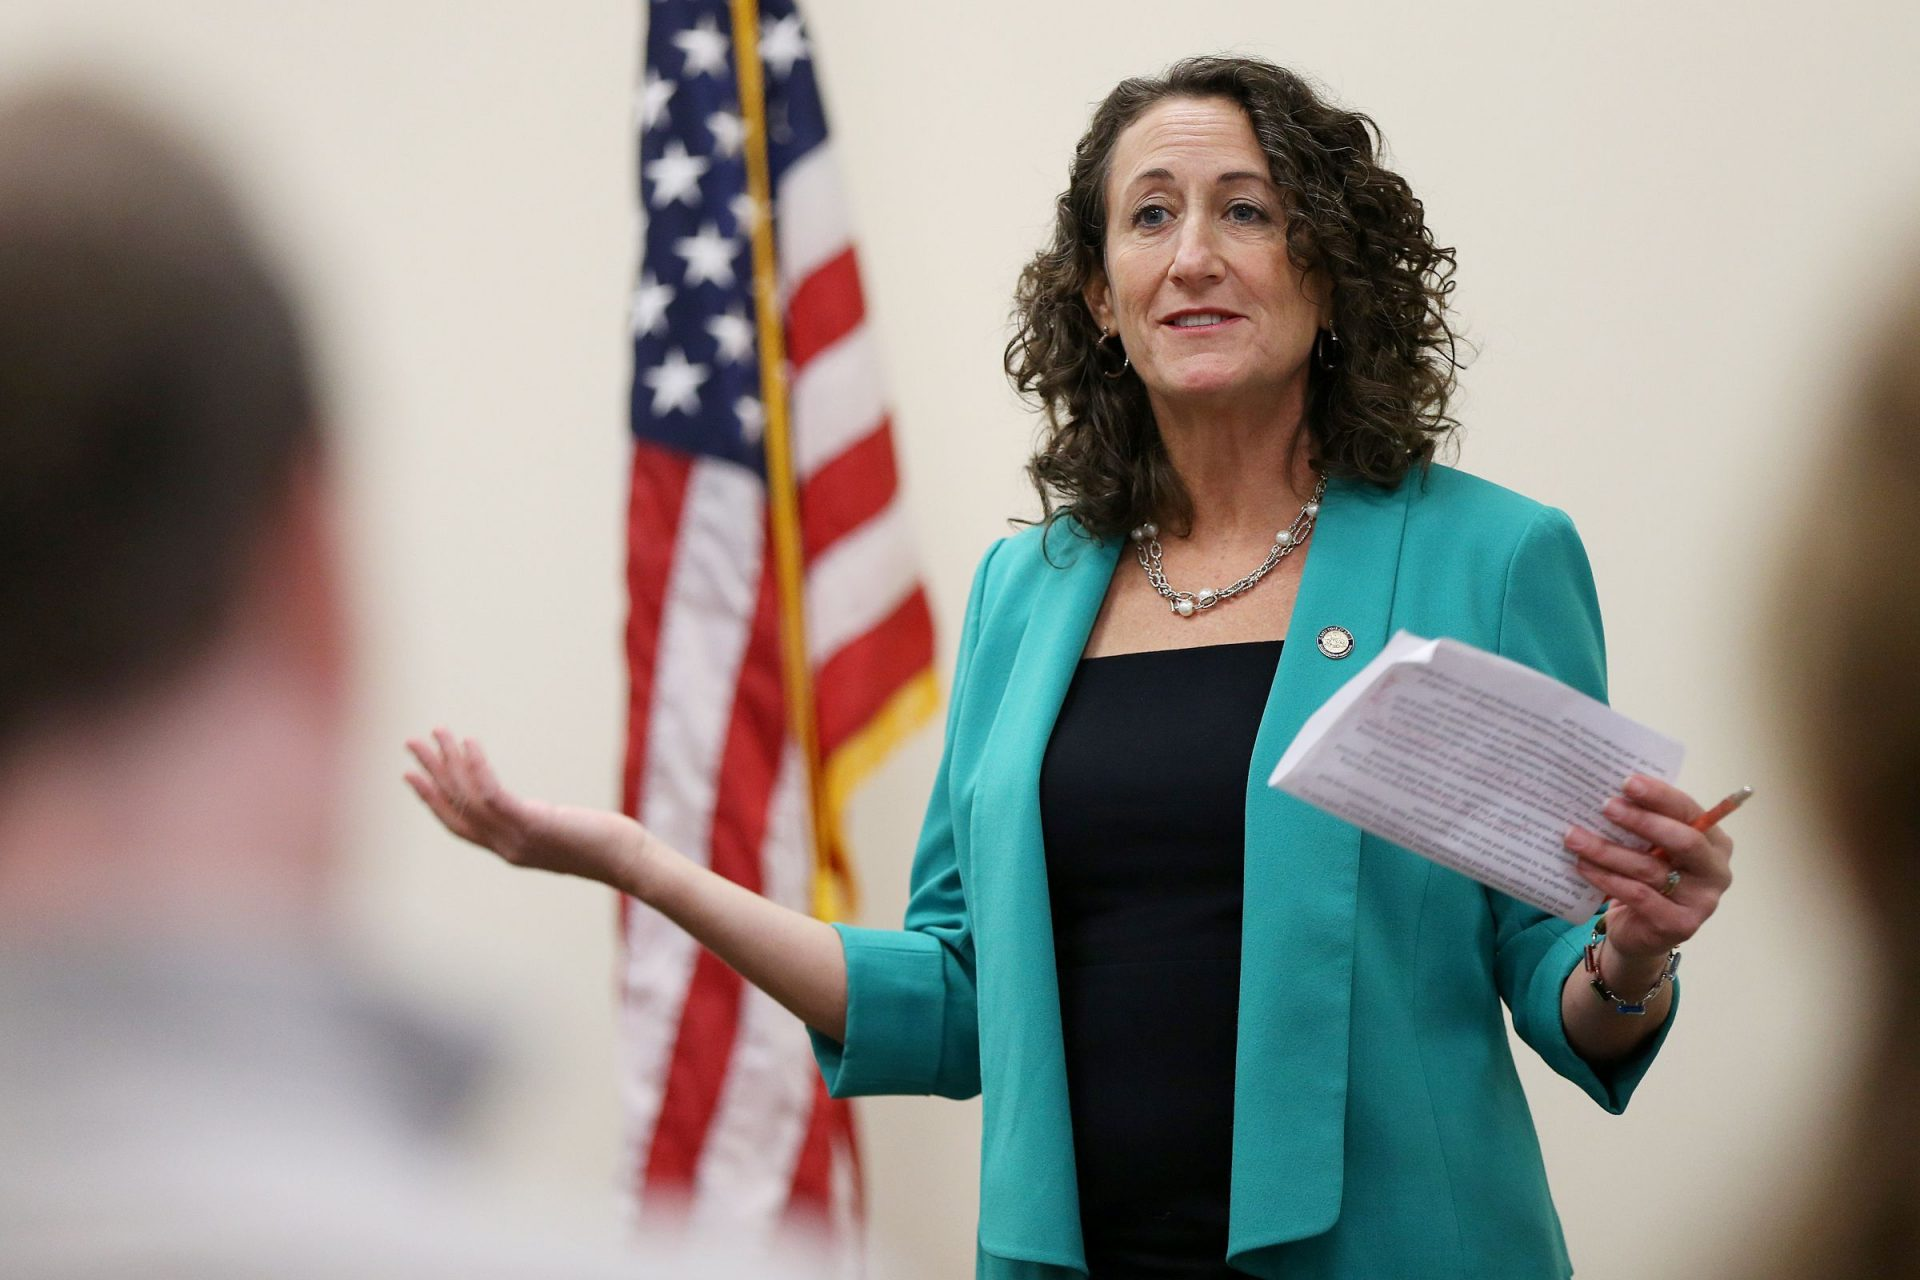 Kathy Boockvar has led the Department of State since 2019, and oversaw a tense and difficult presidential election in a battleground state last year.